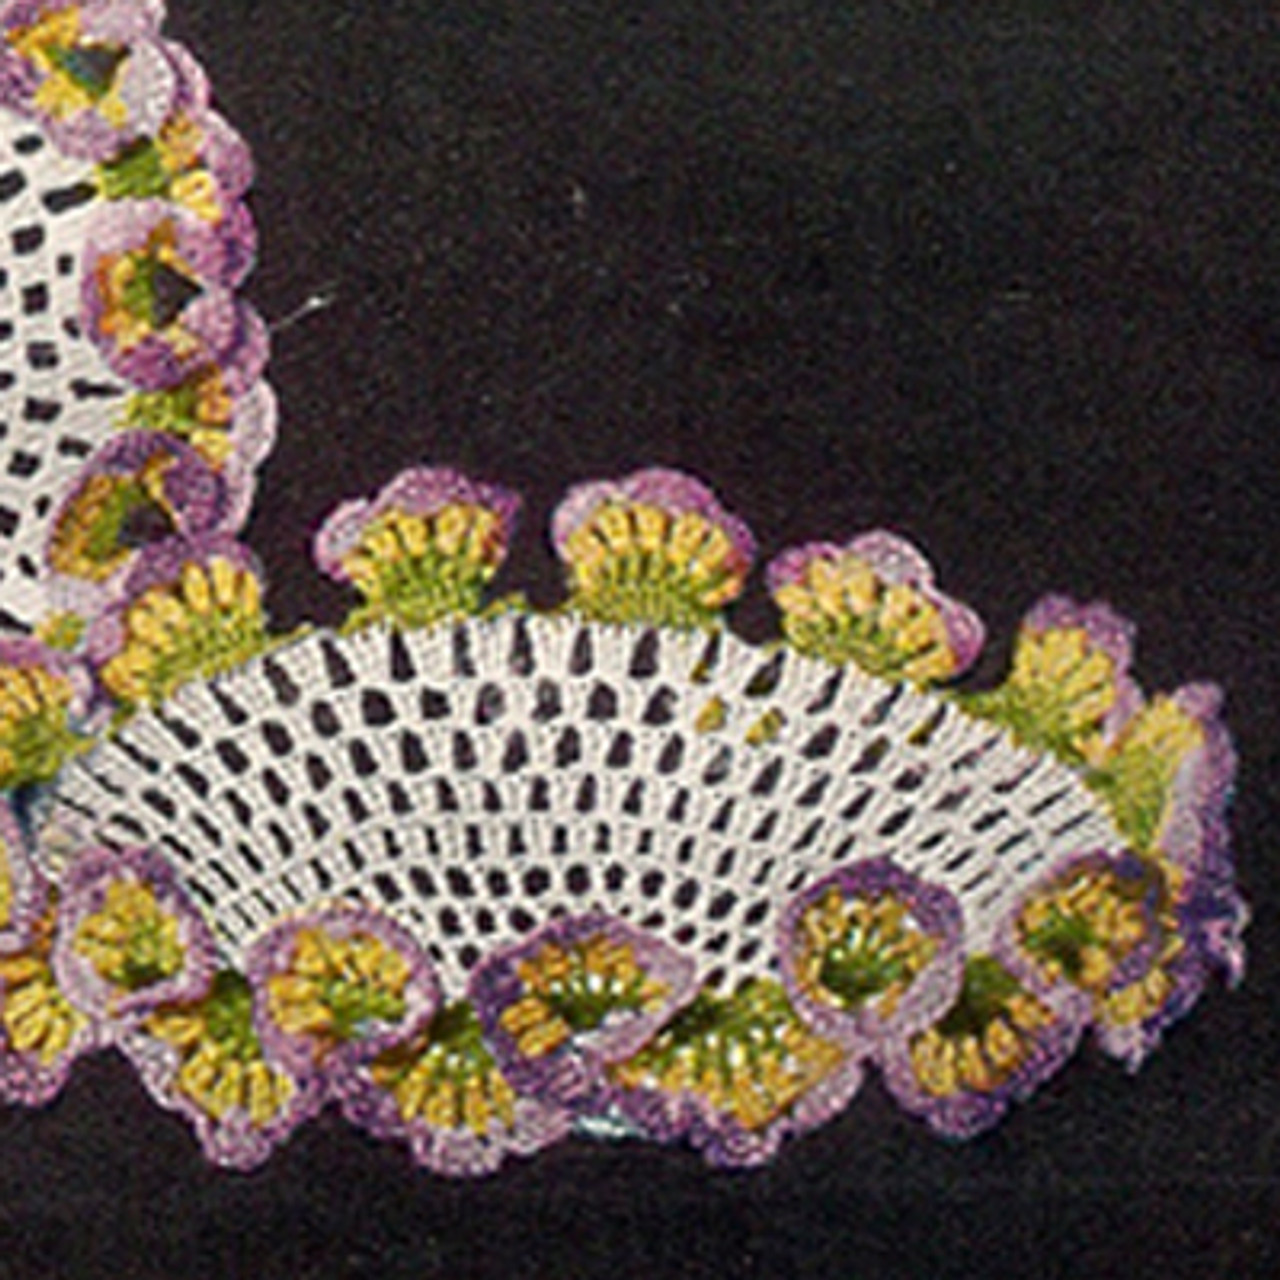 Crocheted Bowl Pattern with Pansy Border